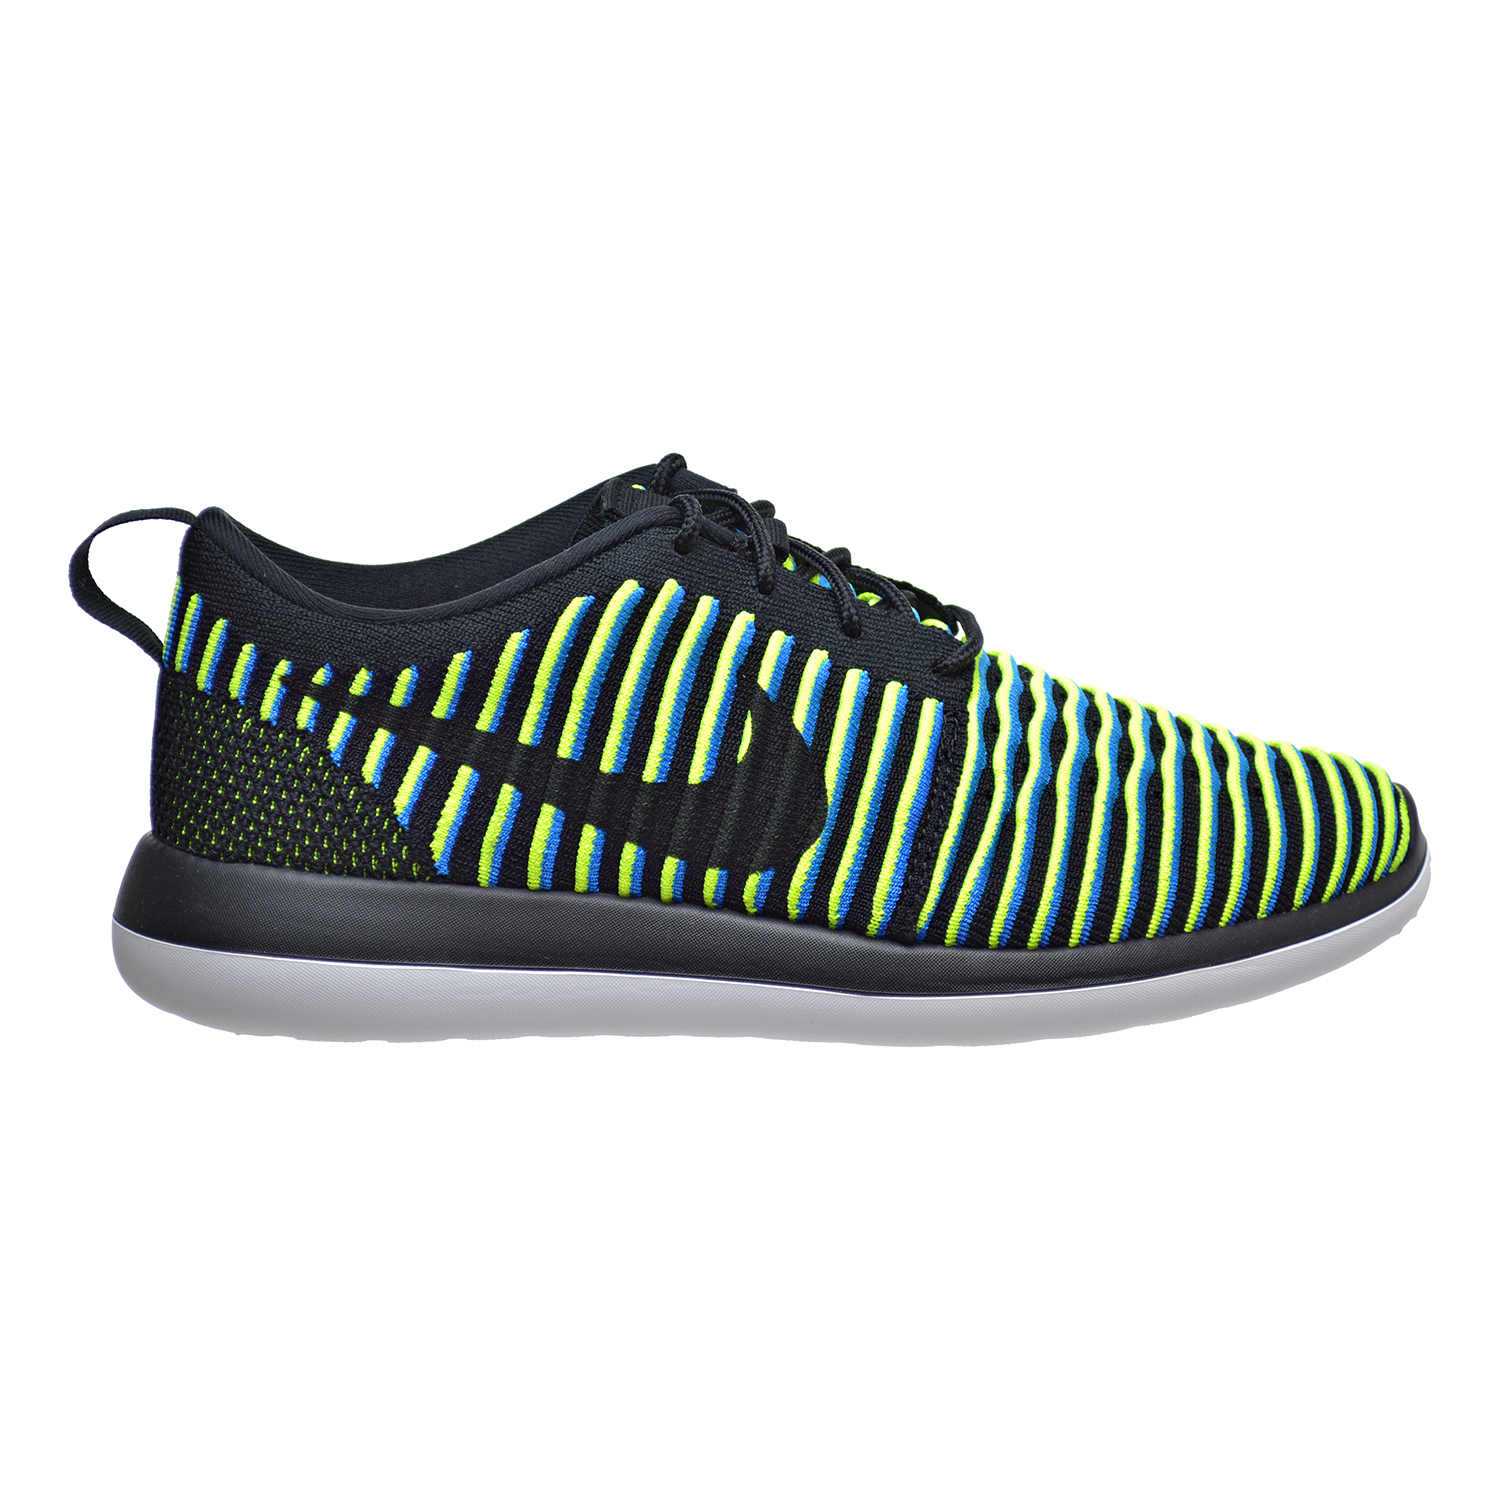 8301a7f8343e ... sweden nike roshe two flyknit womens shoes black photo blue volt 844929  003 7836a 63896